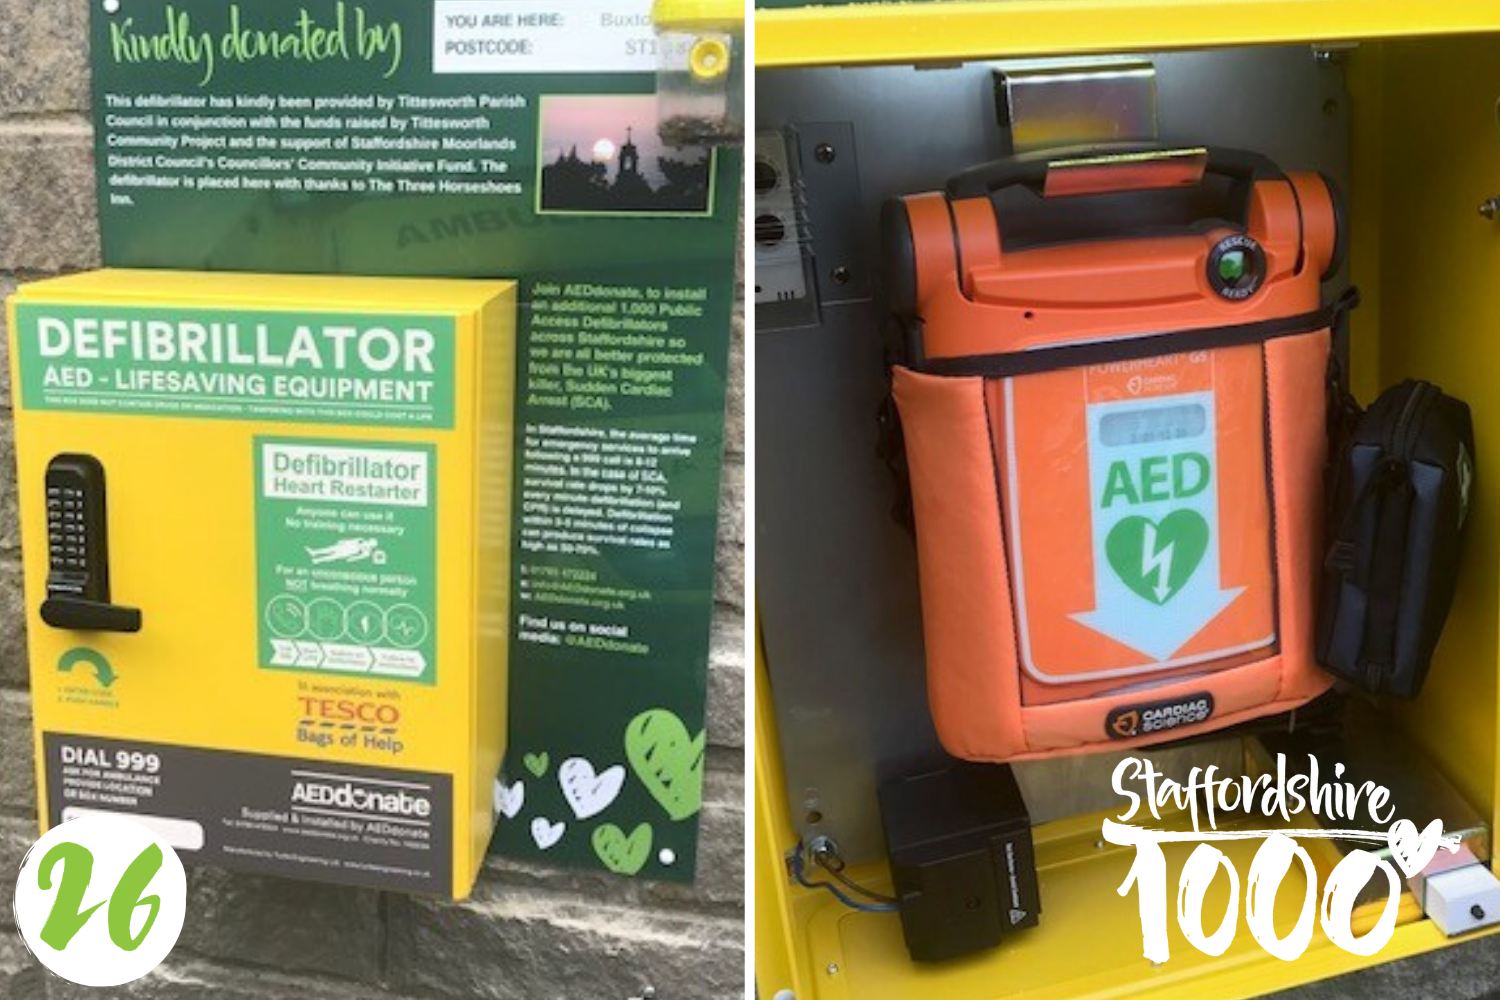 Defibrillator installed at The Three Horseshoes, Leek